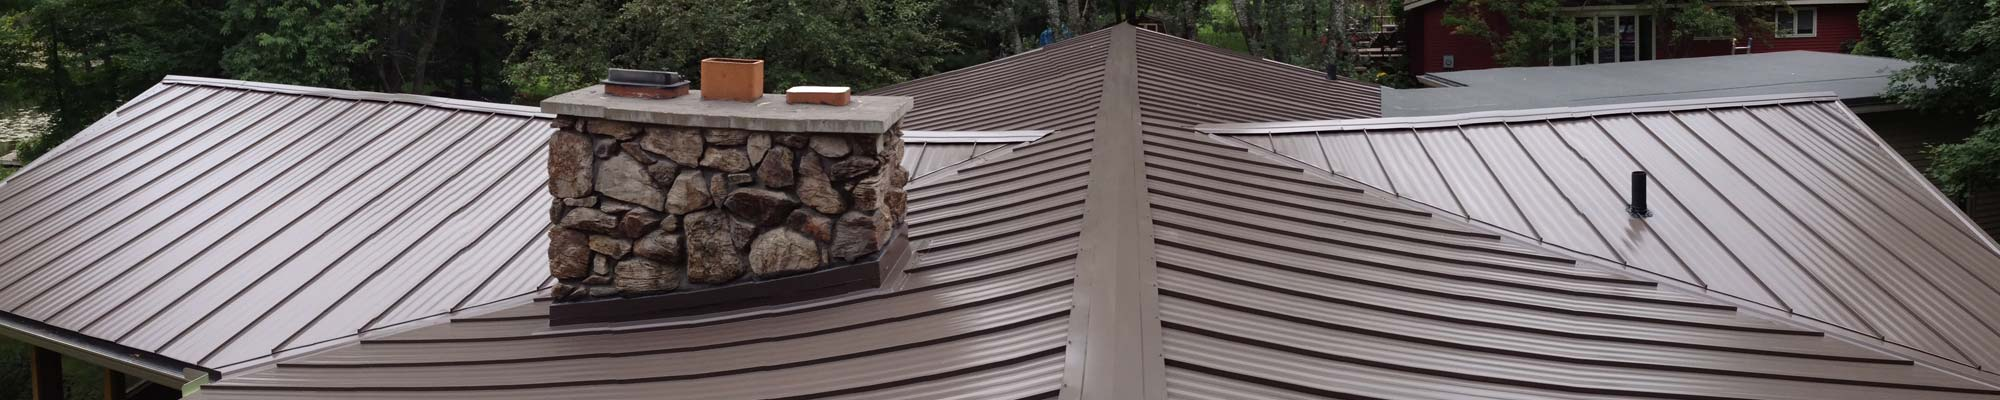 Metal Roofing Contractor in Stevens Point, WI